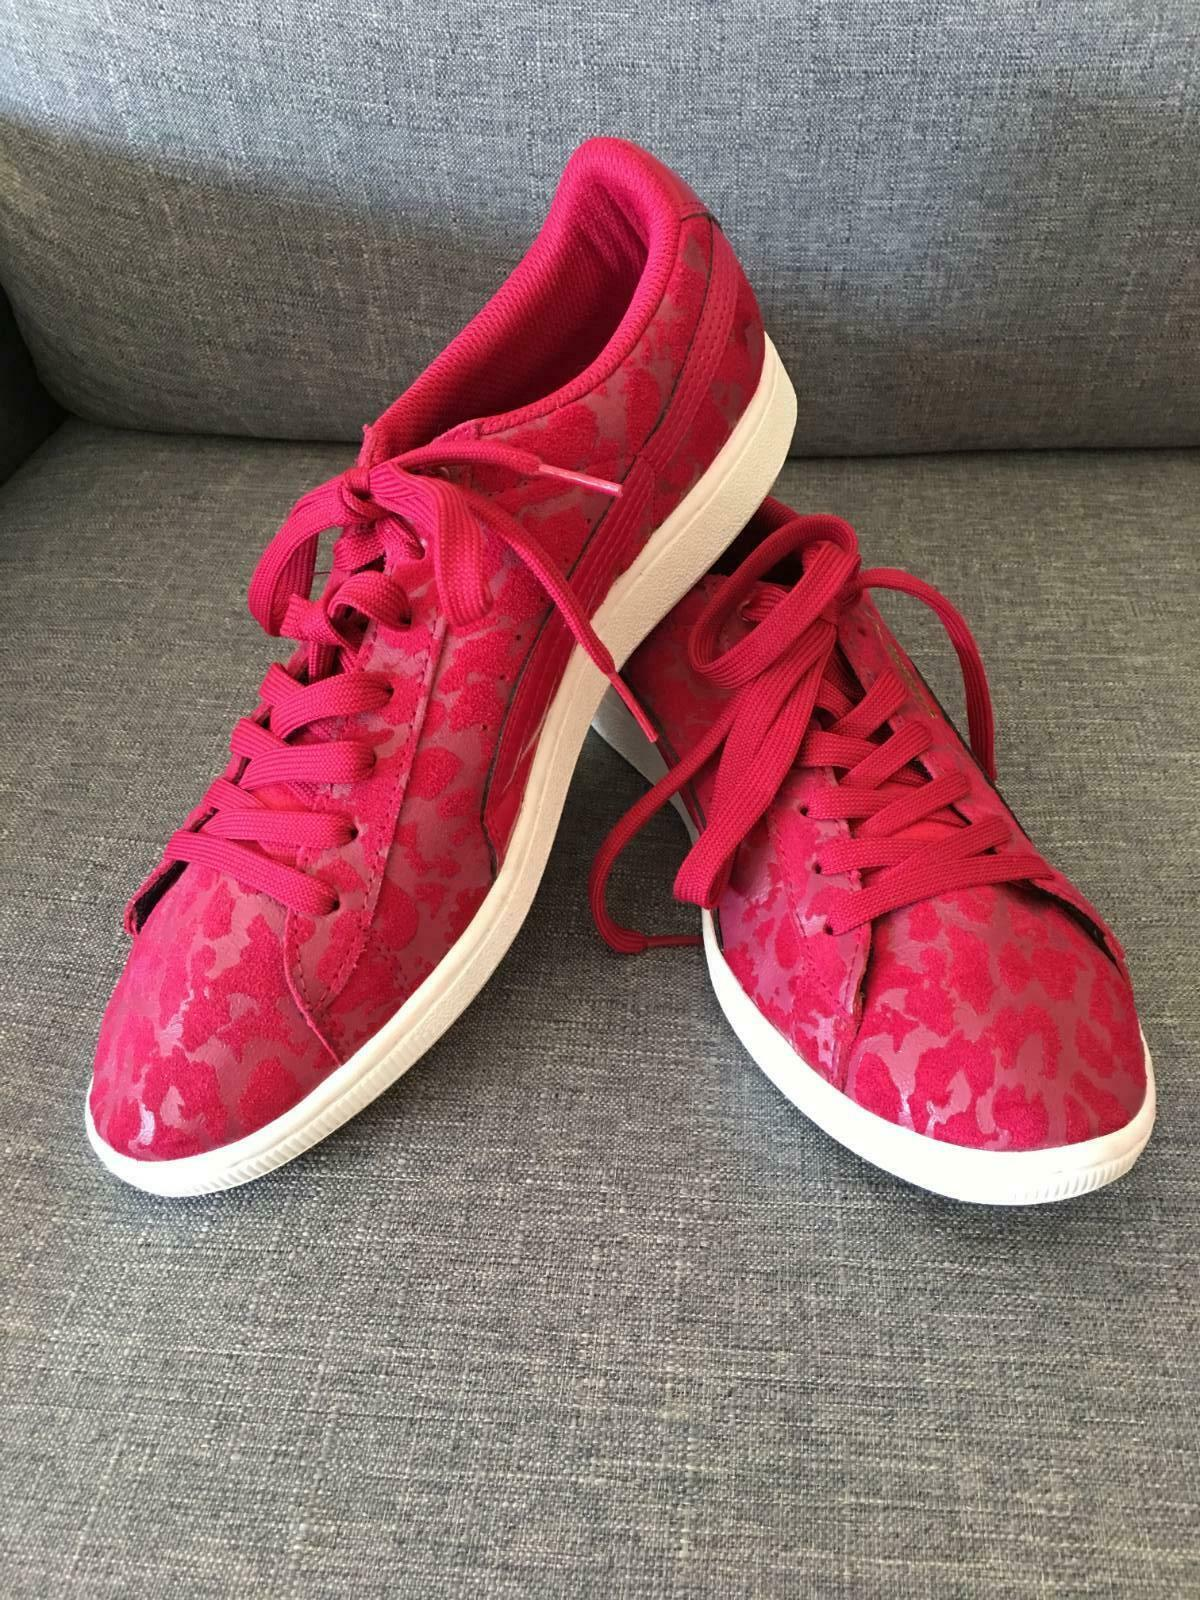 femmes Taille 11 rose Pattern Pumas - Excellent Condition